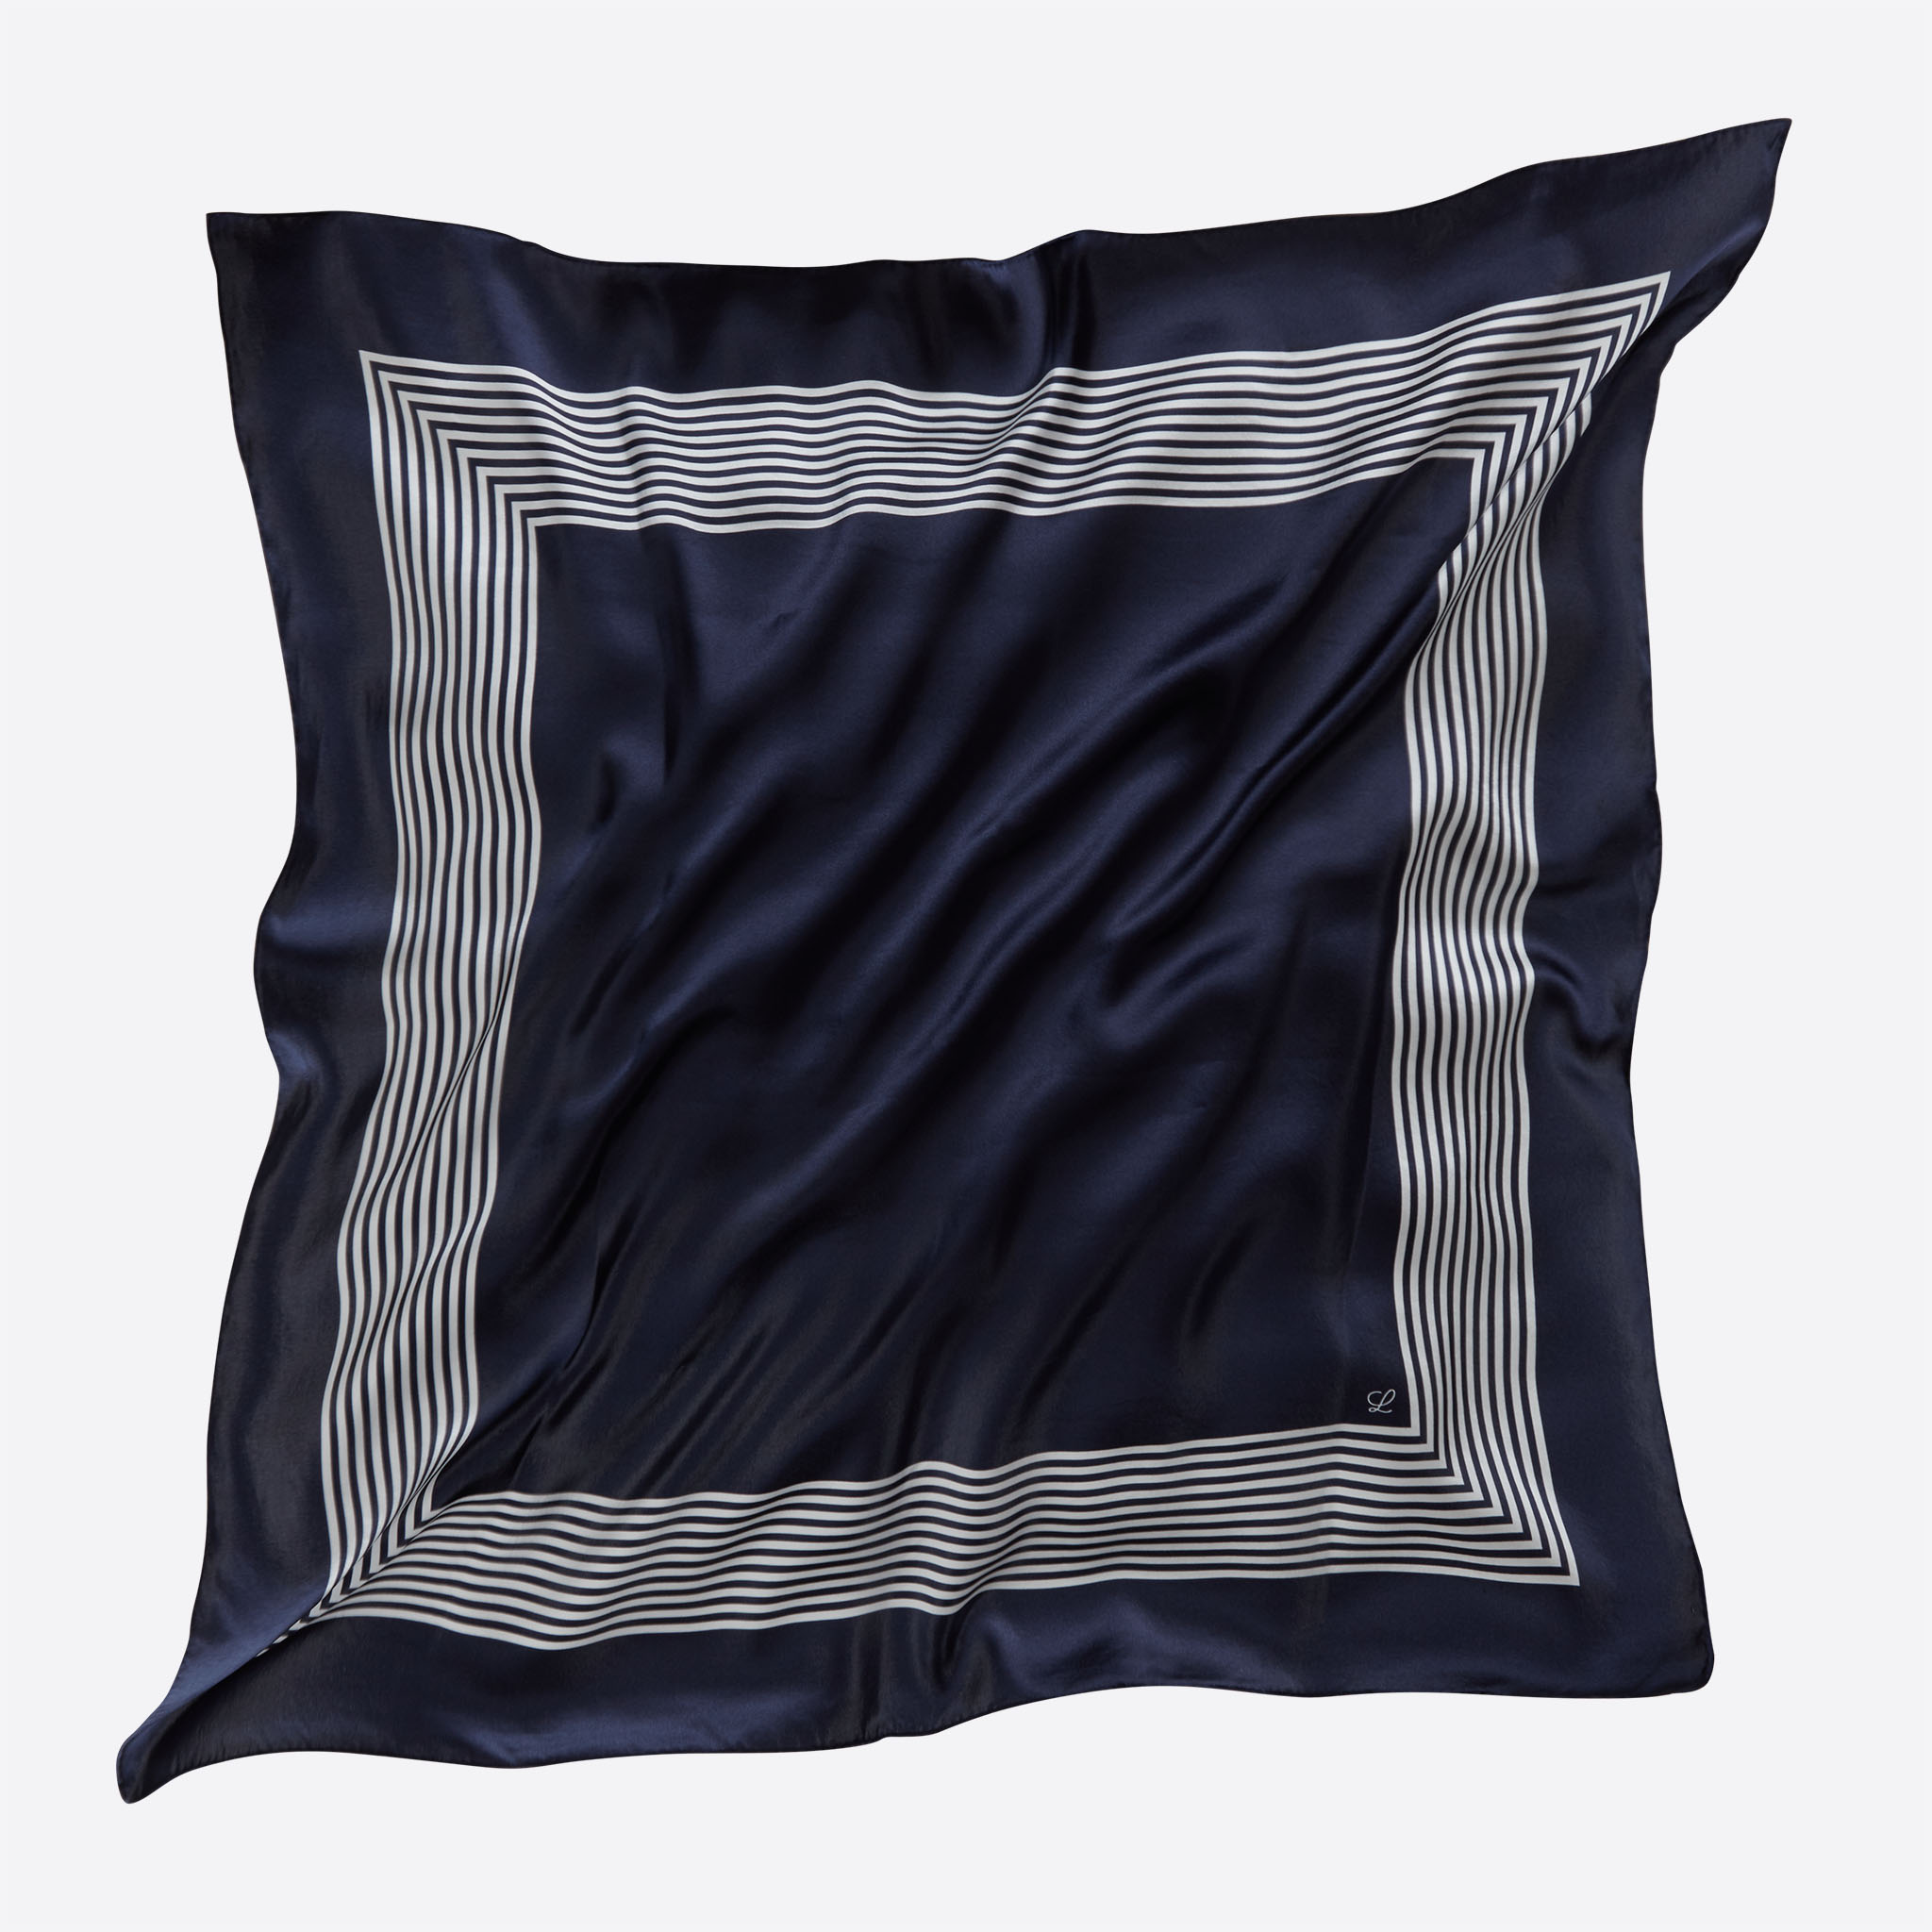 Lalouette navy striped square silk scarf flying